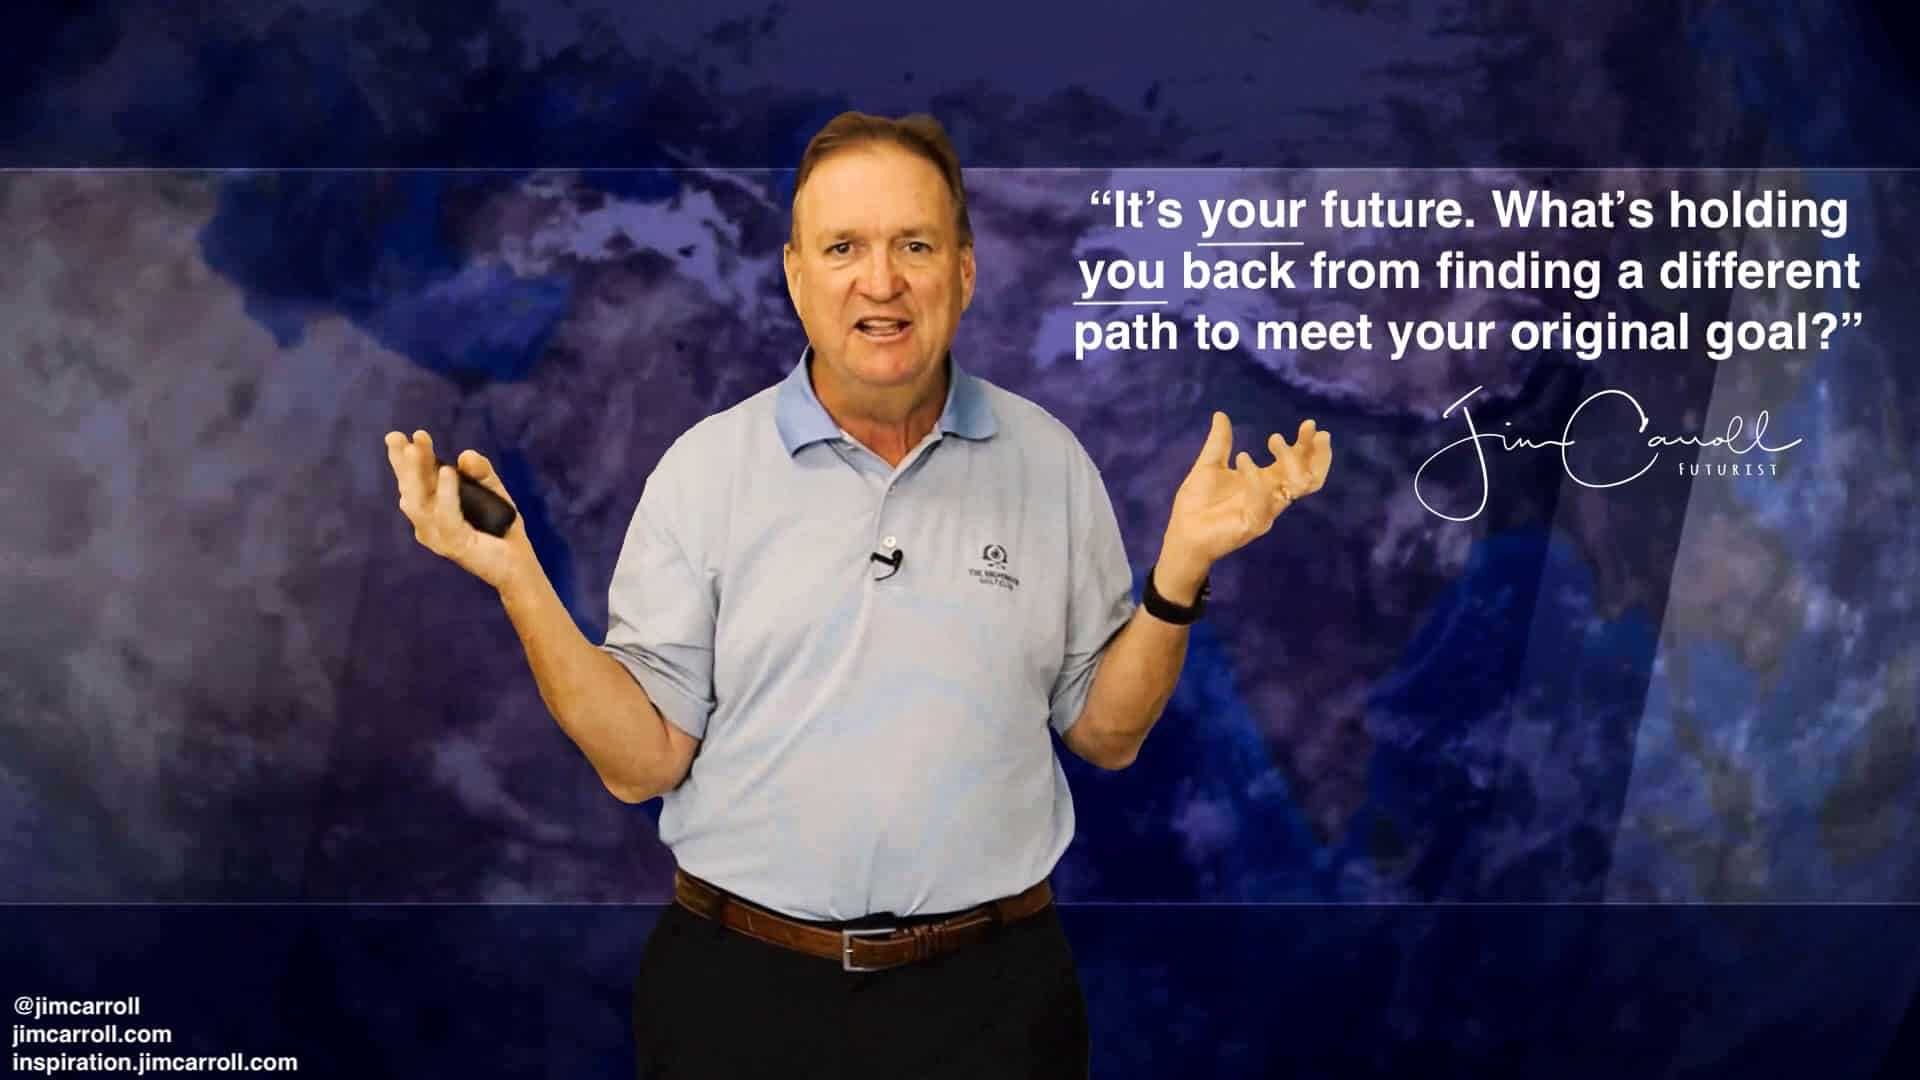 """Daily Inspiration: """"It's your future. What's holding you back from finding a different path to meet your original goal?"""""""